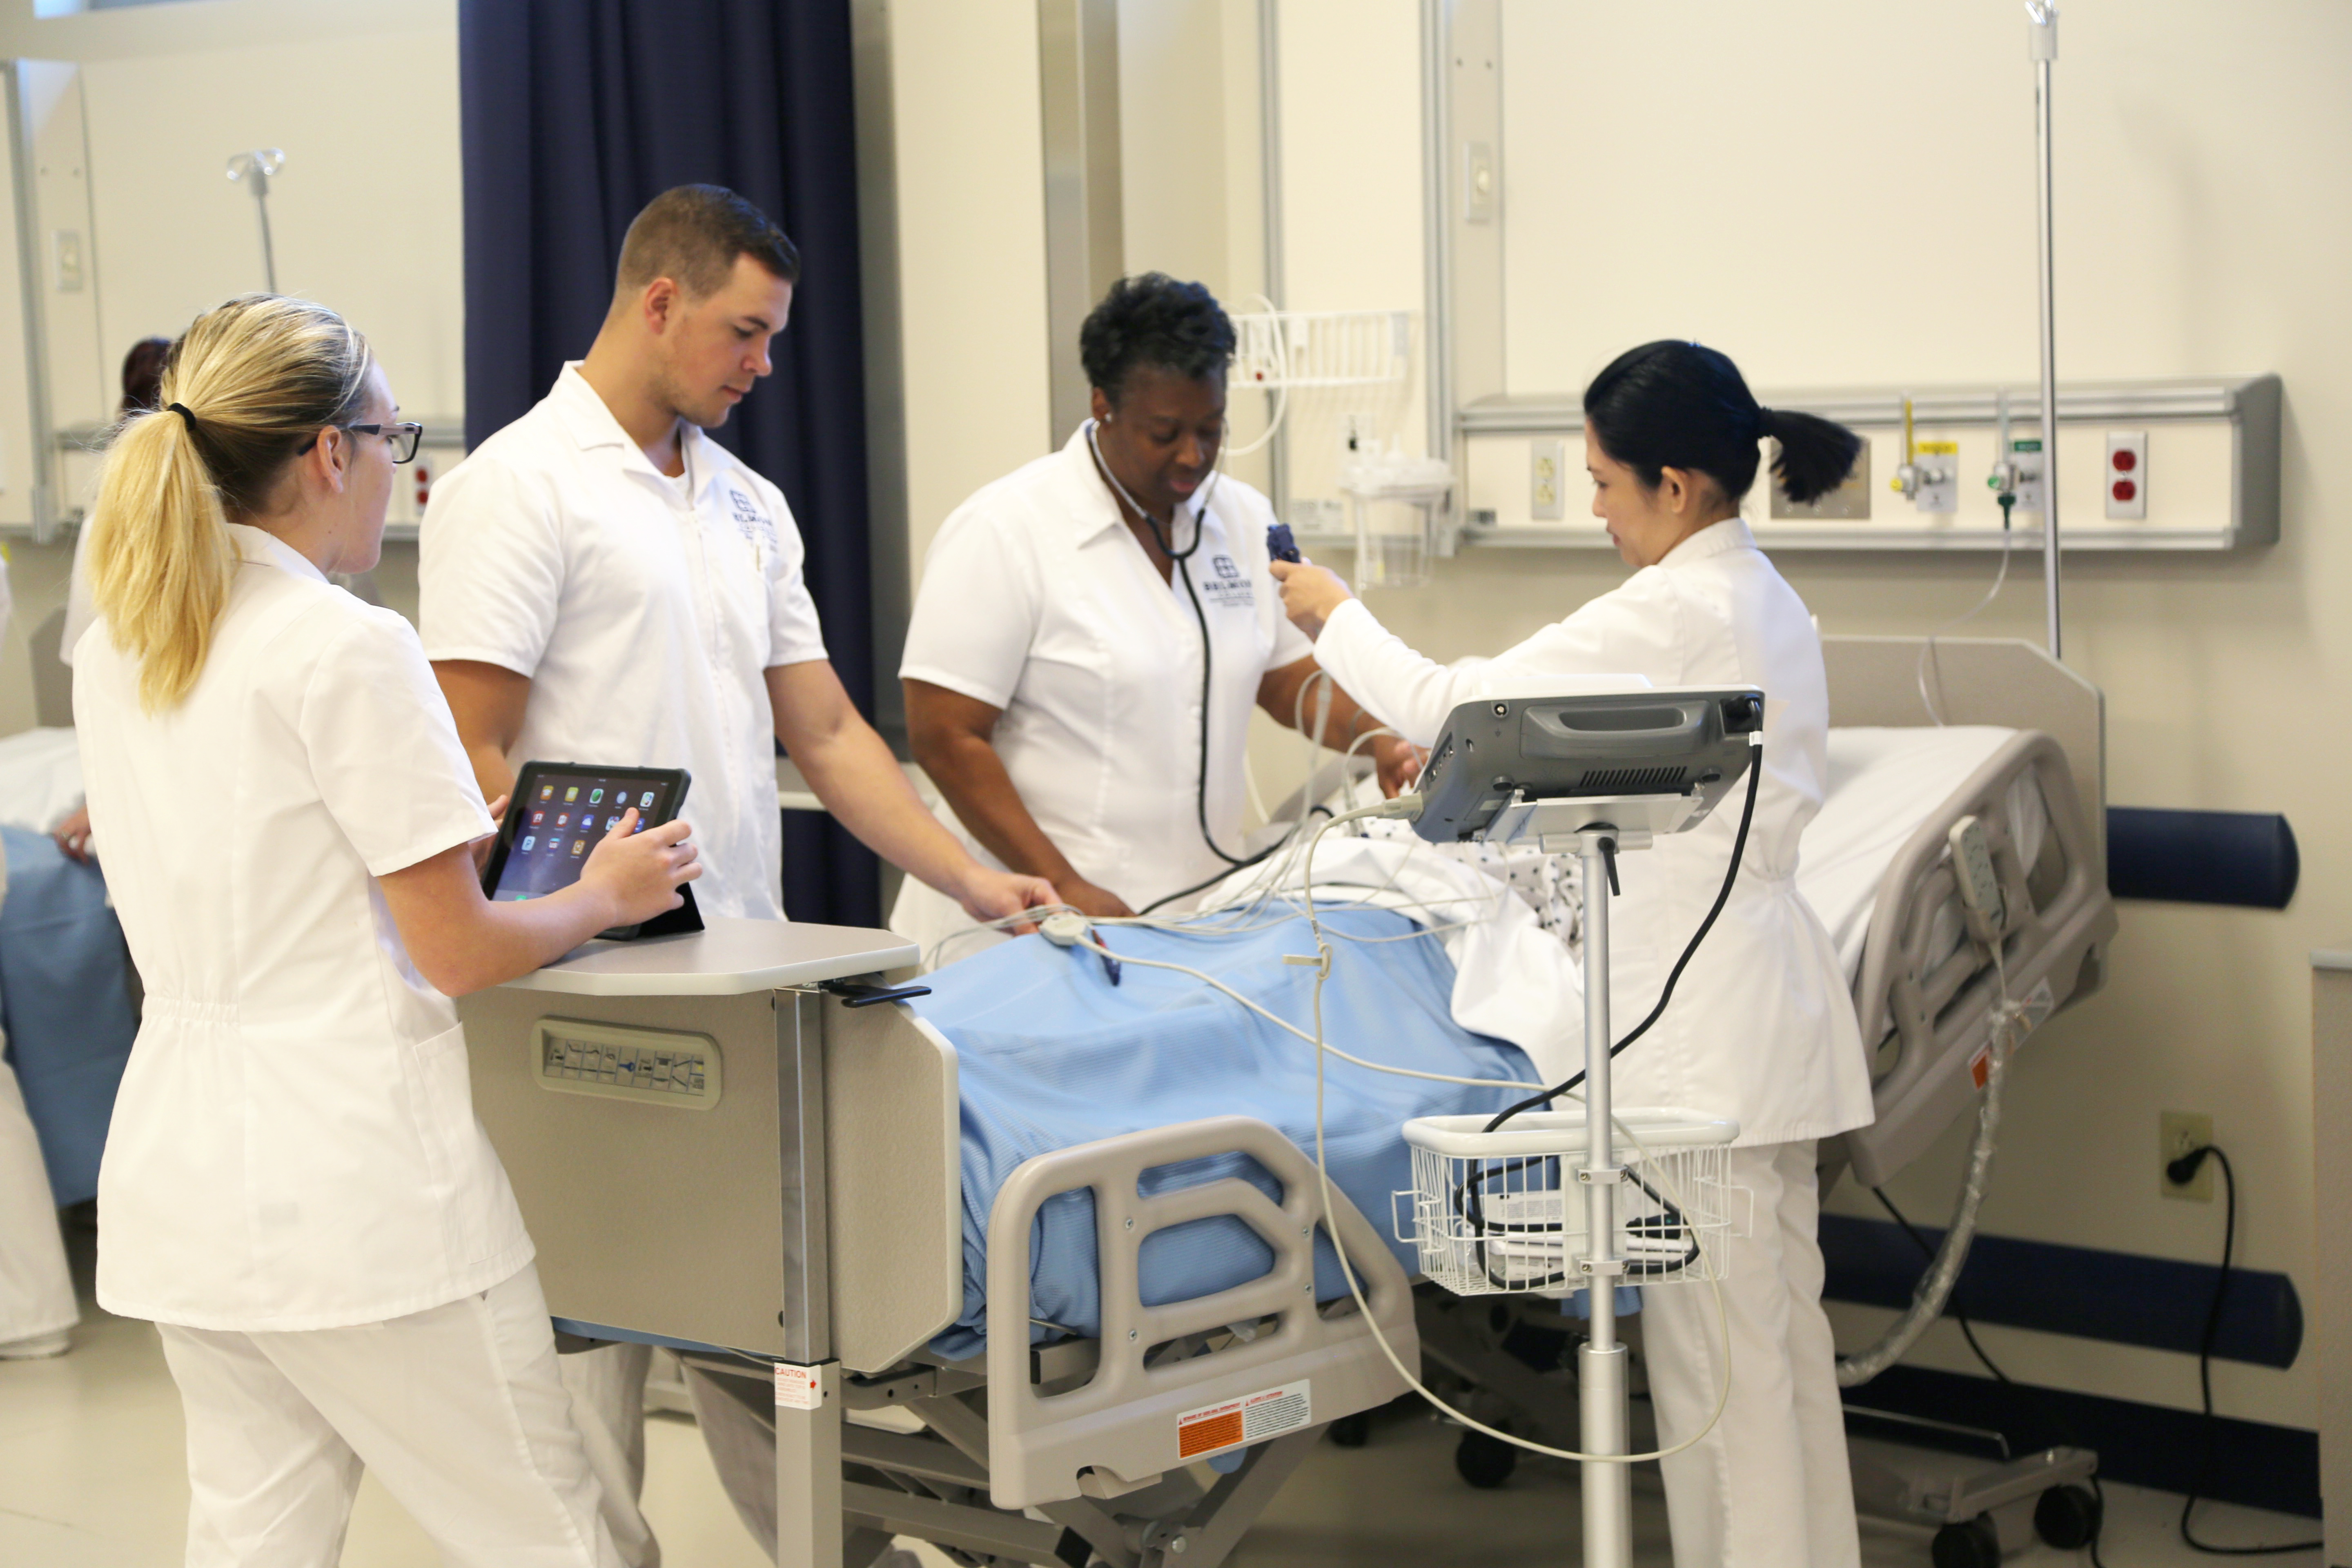 Pictured: Associate Degree Nursing students utilizing their iPads in class at the college's new Health Sciences Center; the use of iPads in the classroom facilitate how students and faculty generate content, collaborate, stay connected, and communicate both online and within the physical space of a classroom.